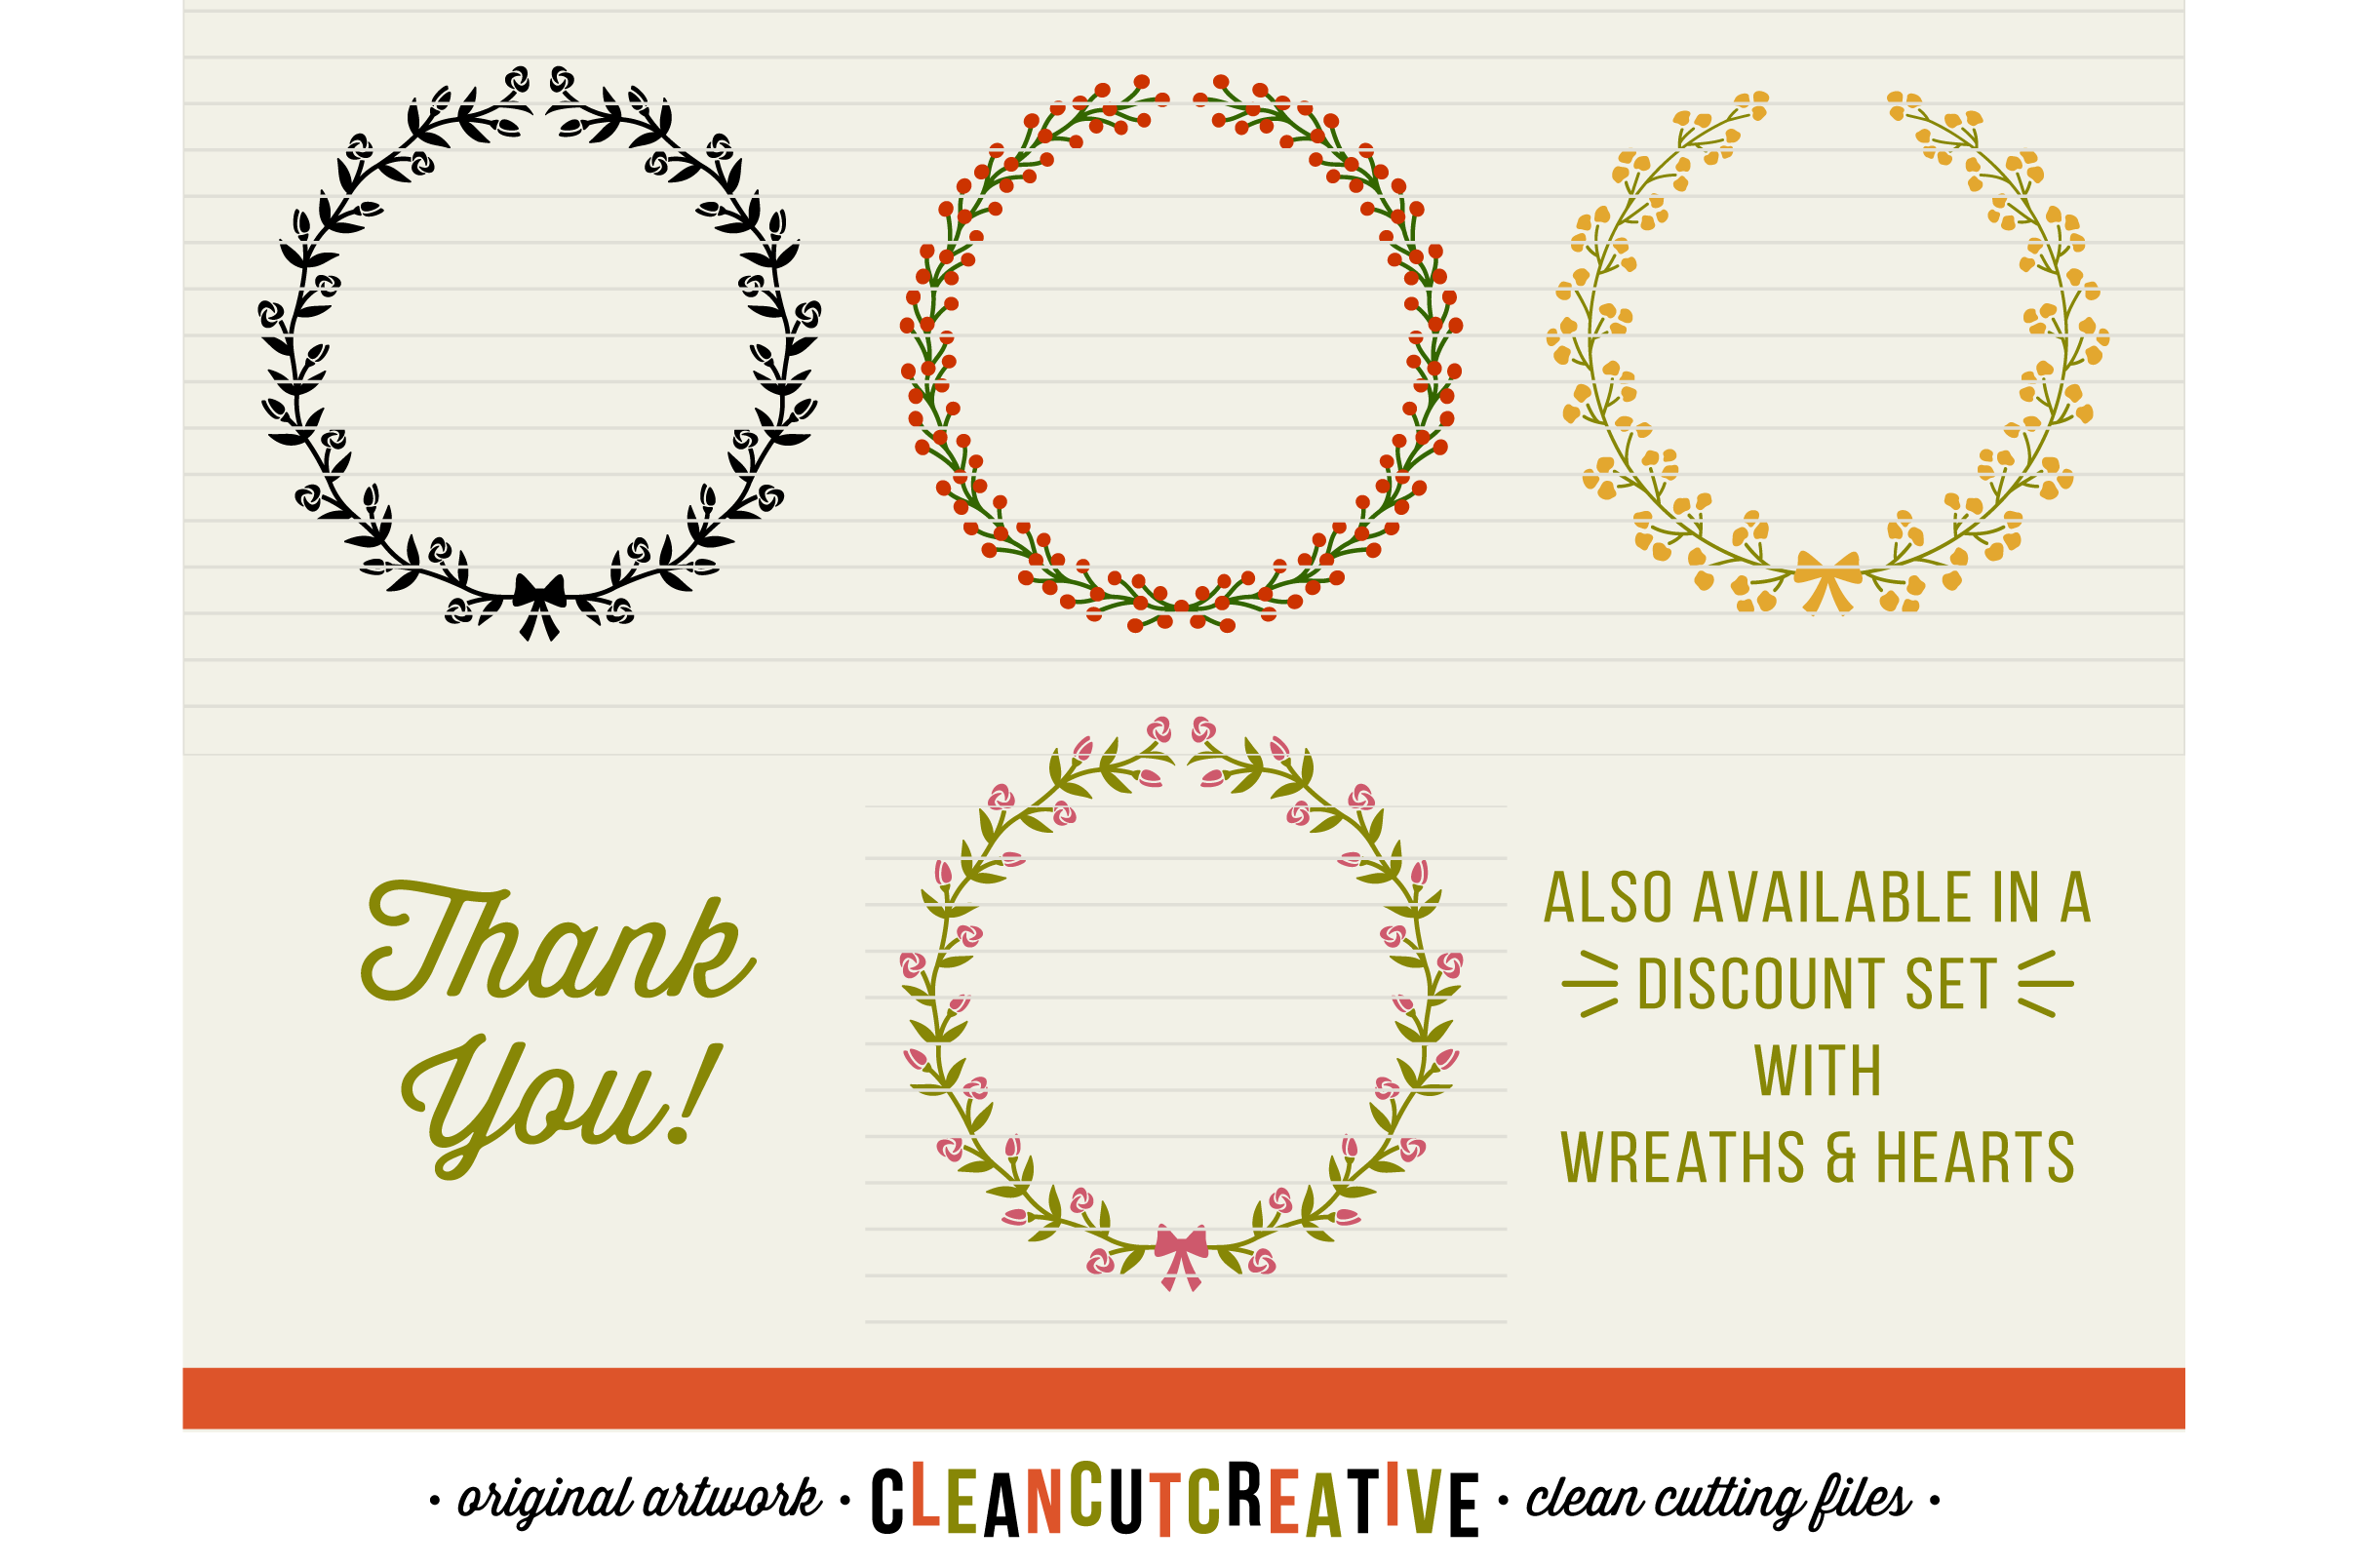 7 svg FLORAL LAURELS floral leaf circleframes - SVG DXF EPS PNG - for Cricut and Silhouette Cameo - clean cutting digital files example image 3